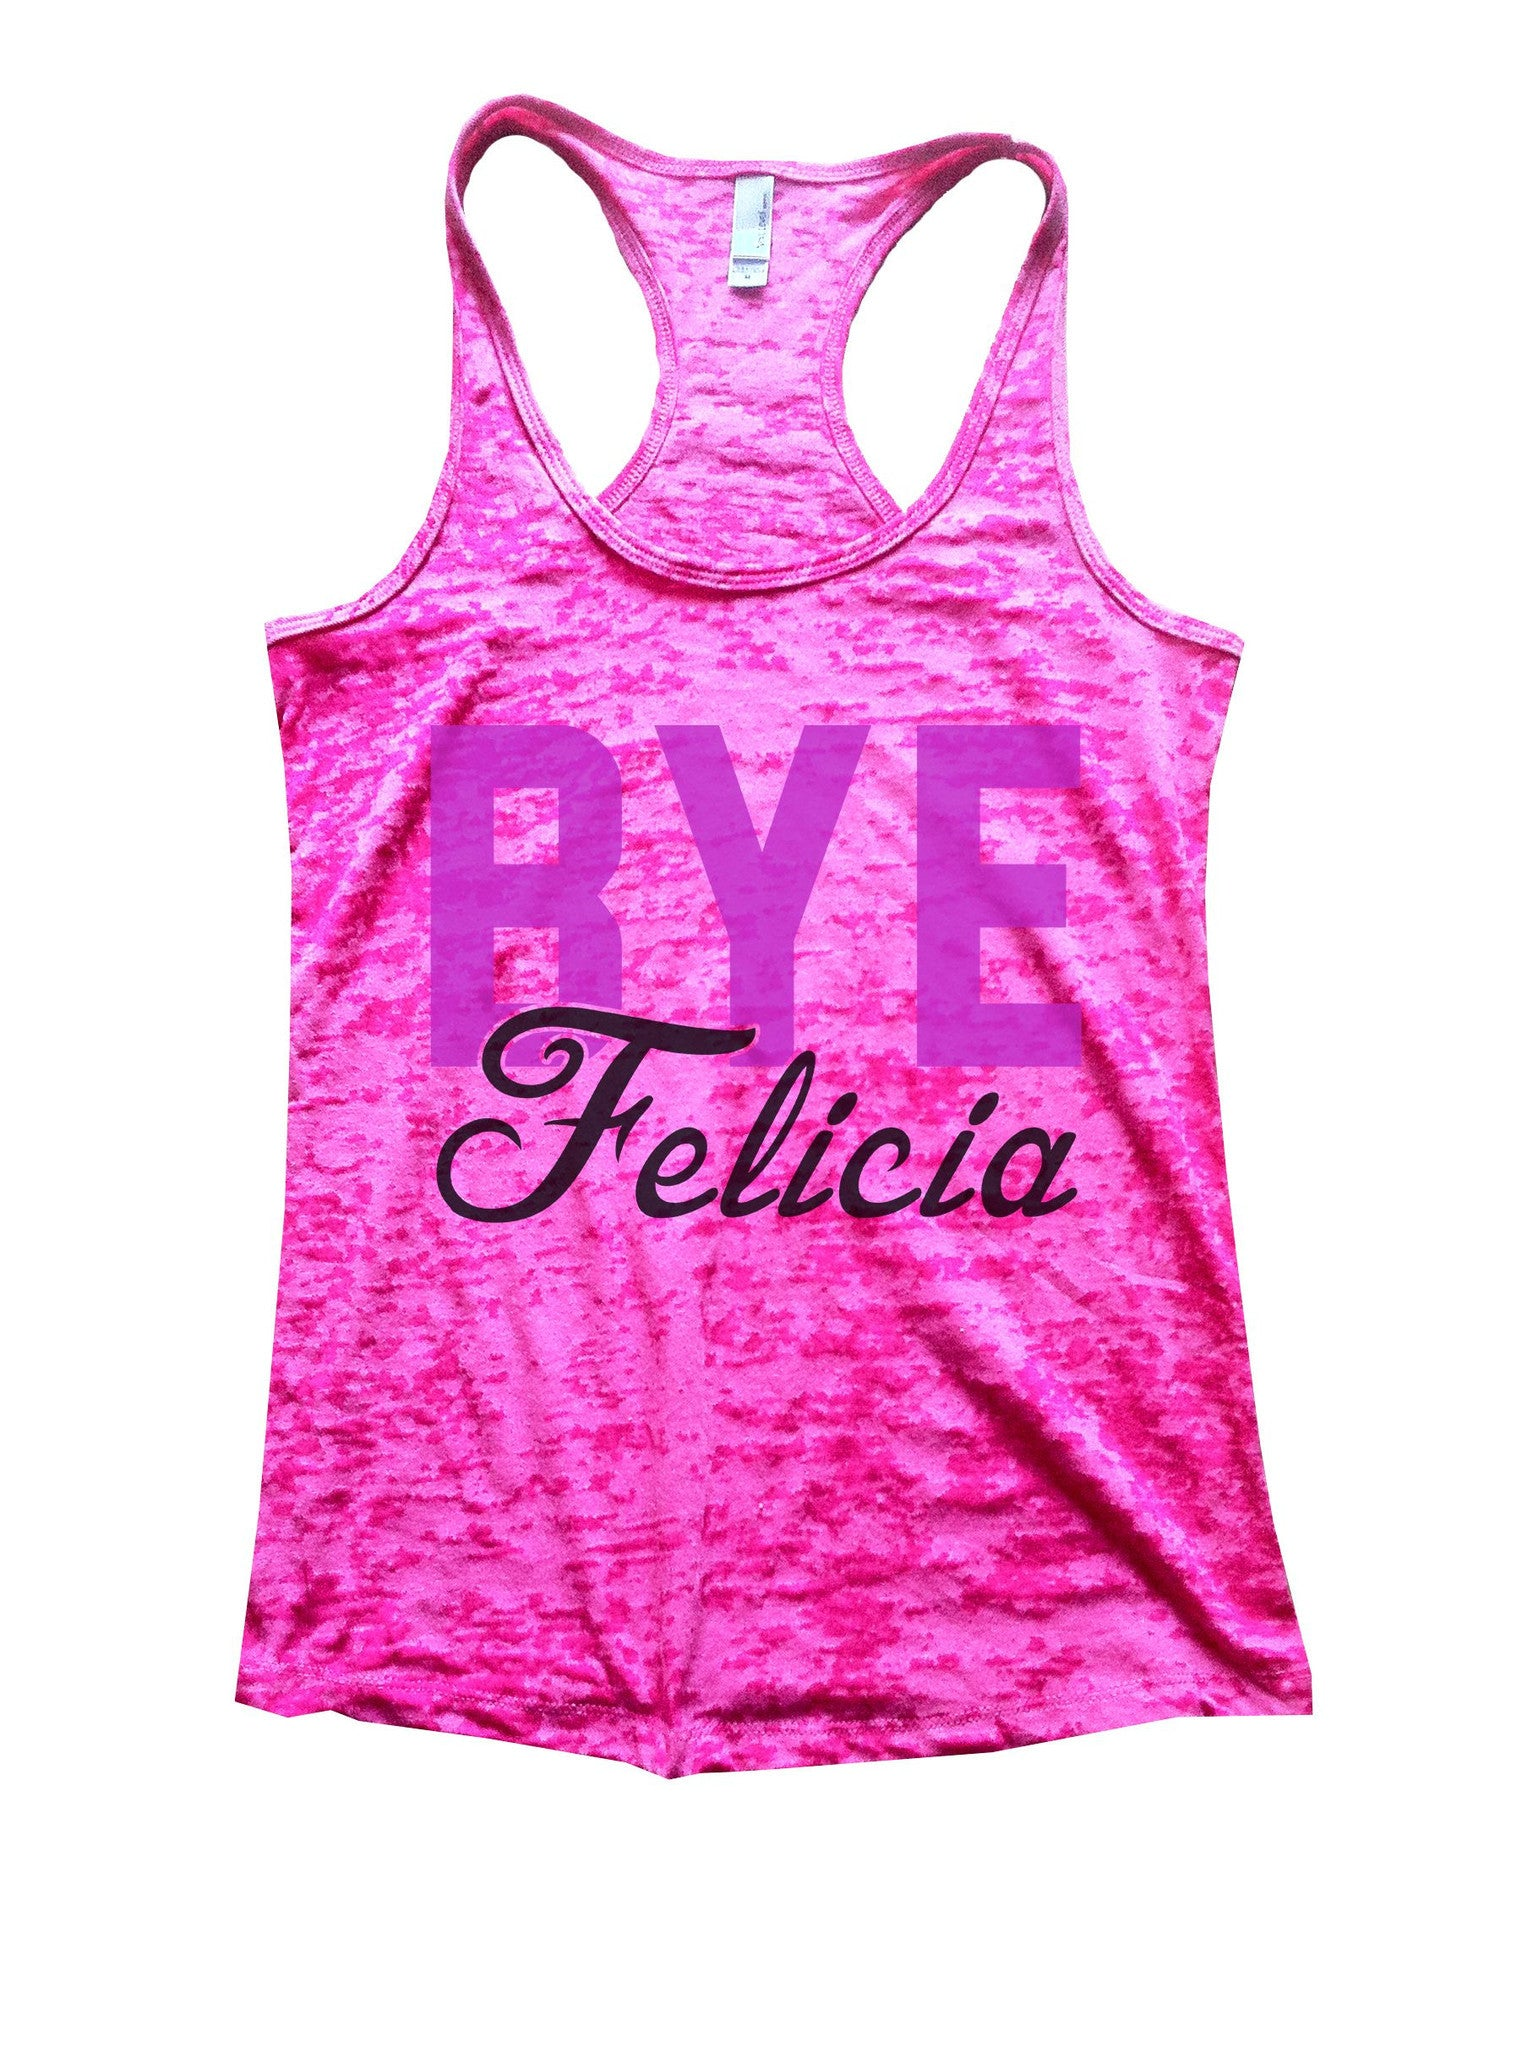 Bye Felicia Burnout Tank Top By BurnoutTankTops.com - 1092 - Funny Shirts Tank Tops Burnouts and Triblends  - 5